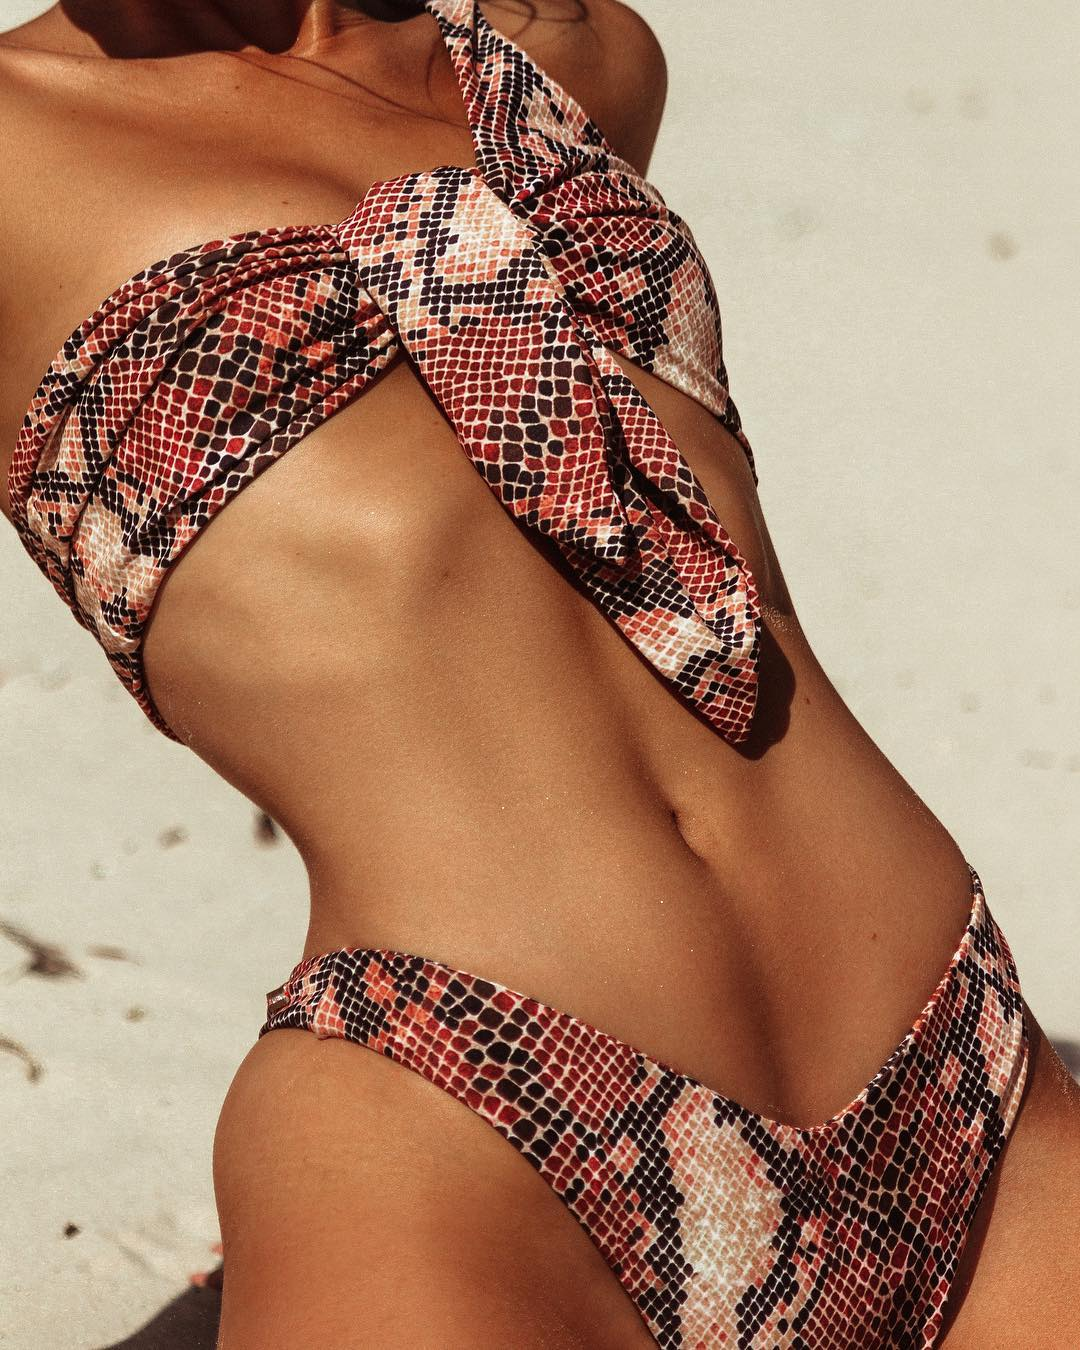 Women Snakeskin Off-Shoulder Two-piece Swimsuit  Lady Girls Beach Bikini Set Push-Up Padded Bra Swimsuit Swimwear Bow BiquiniWomen Snakeskin Off-Shoulder Two-piece Swimsuit  Lady Girls Beach Bikini Set Push-Up Padded Bra Swimsuit Swimwear Bow Biquini